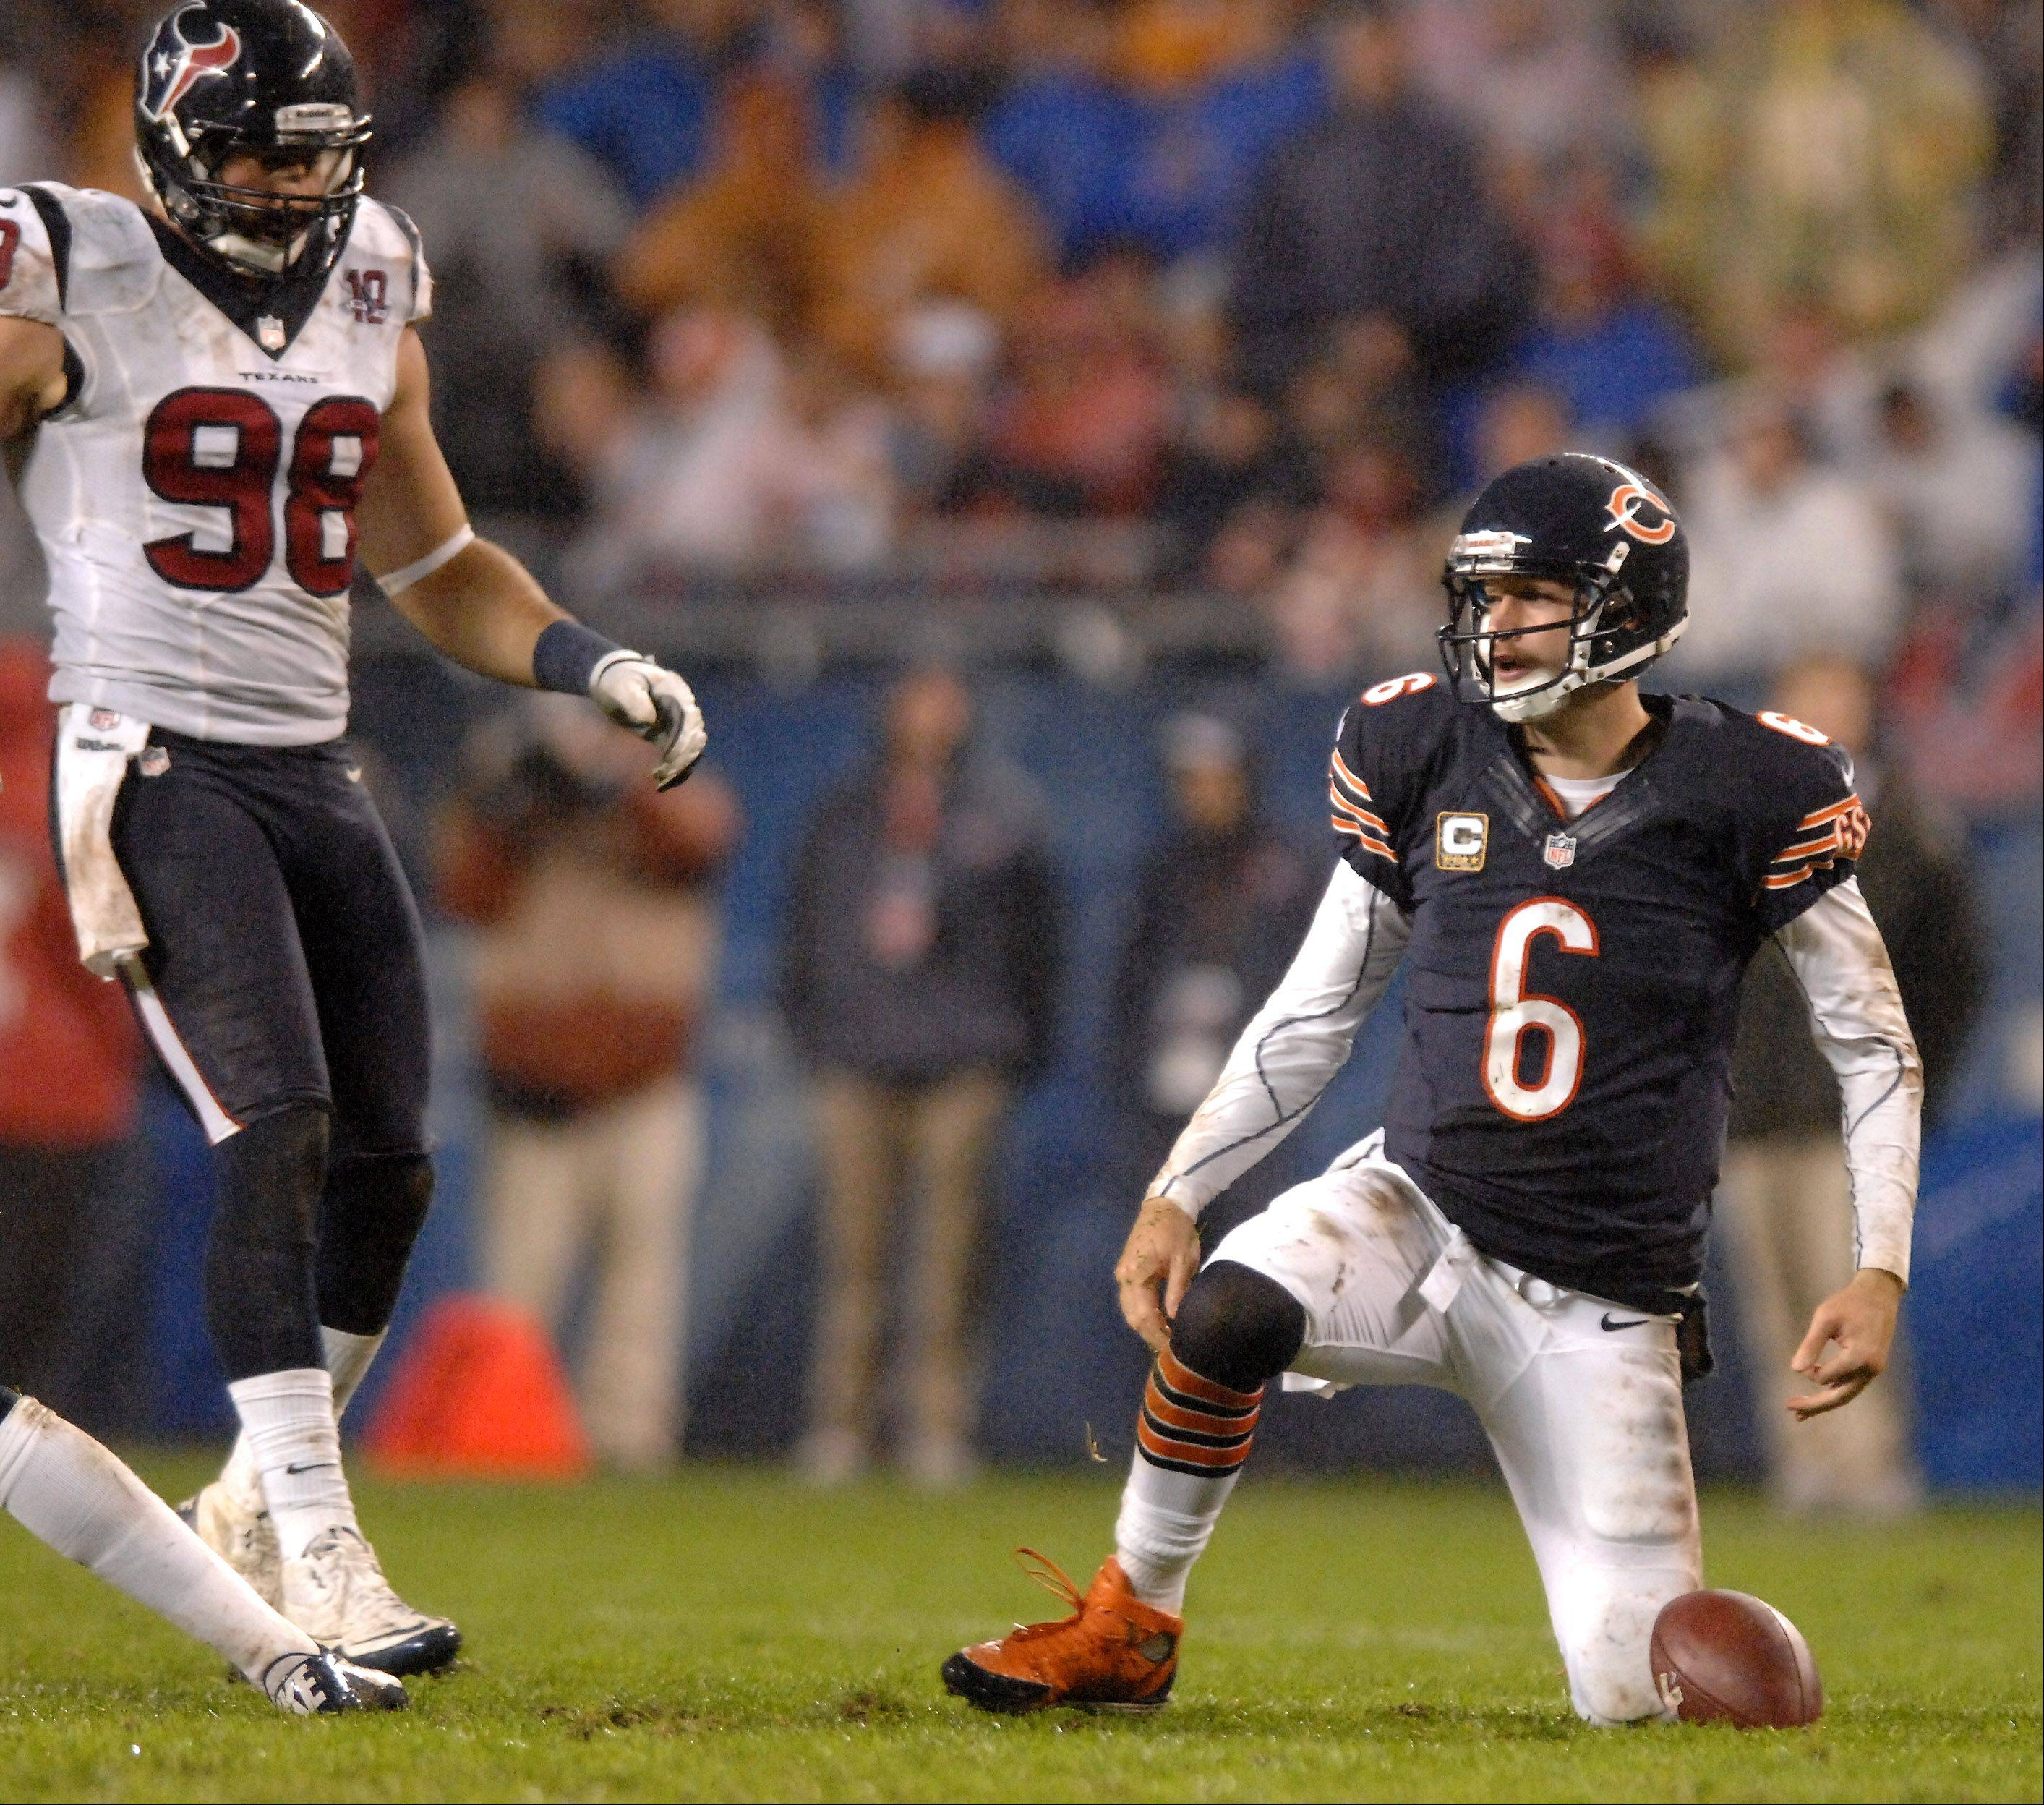 Chicago Bears quarterback Jay Cutler (6) gets up after a second quarter hit that may have resulted in a concussion during Sunday's game at Soldier Field in Chicago. Cutler did not return to the game in the second half.